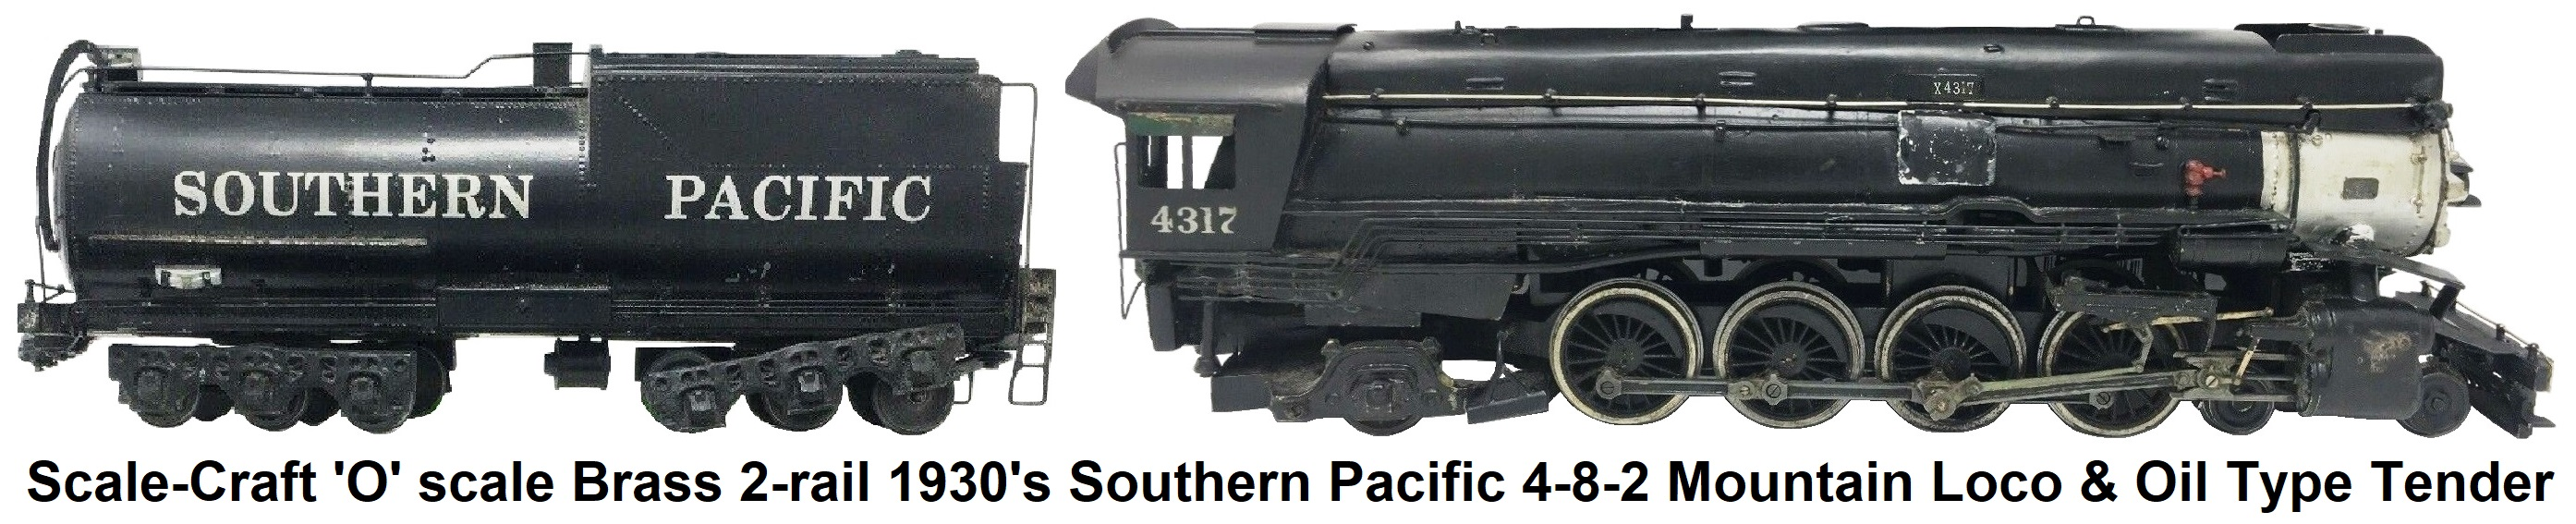 Scale-Craft 1930's Mountain 4-8-2 2-rail Brass 'O' scale Southern Pacific loco and 12-wheel tender